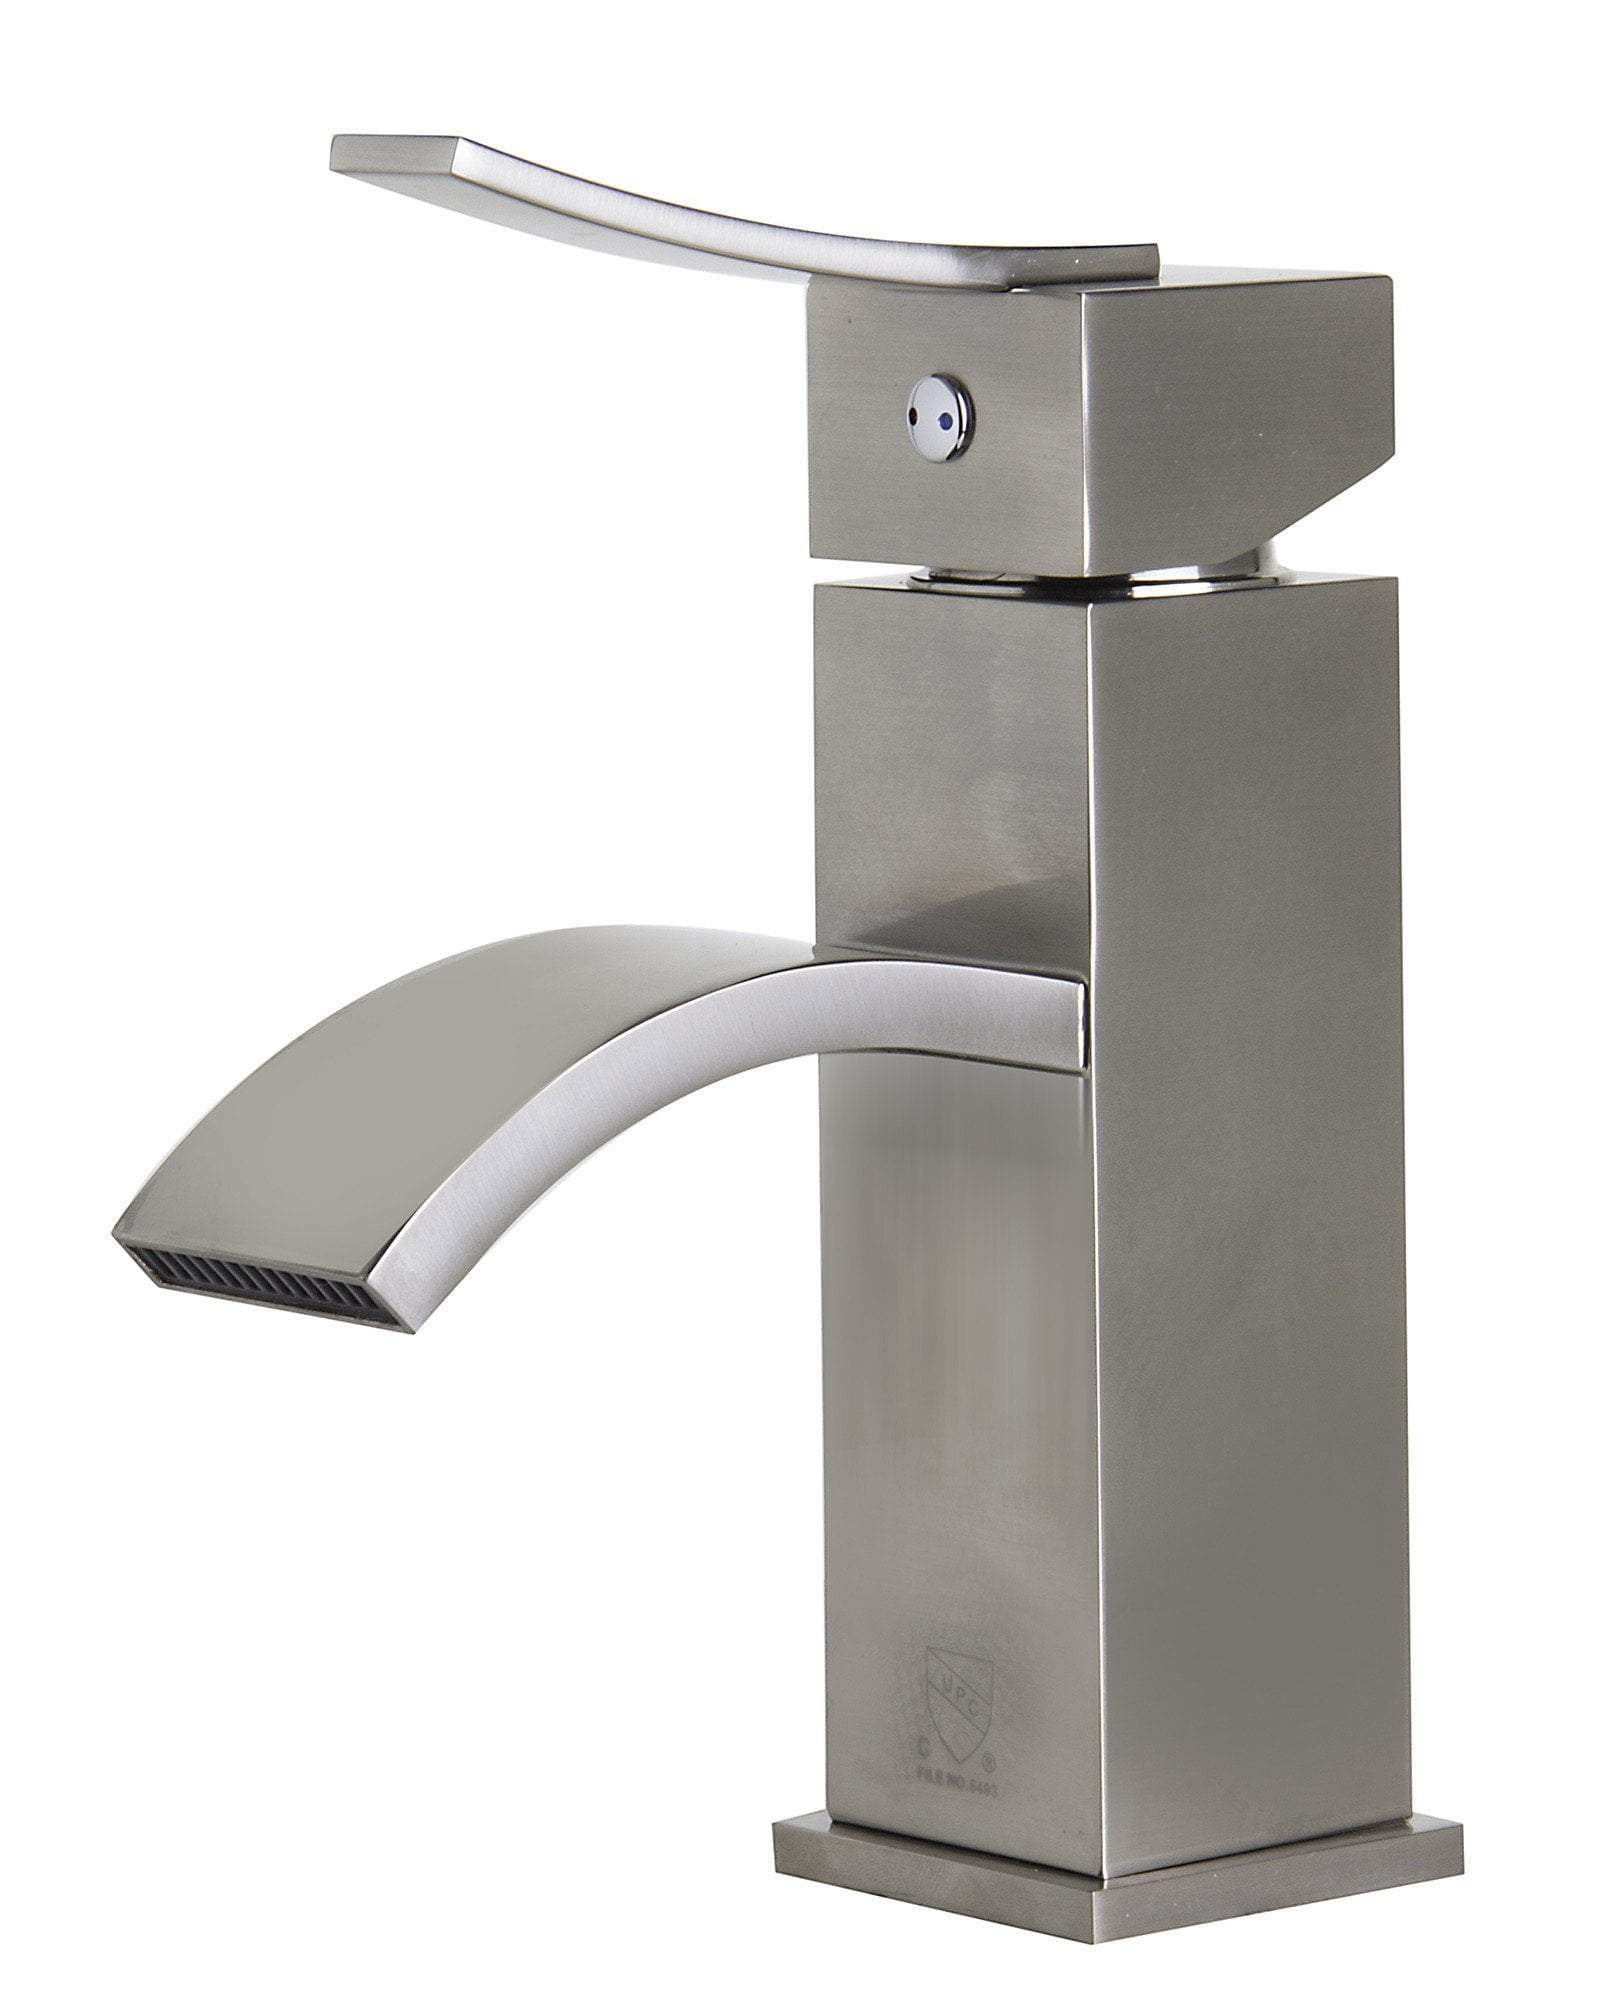 alfi brushed nickel square body curved spout single lever bathroom faucet ab1258 bn